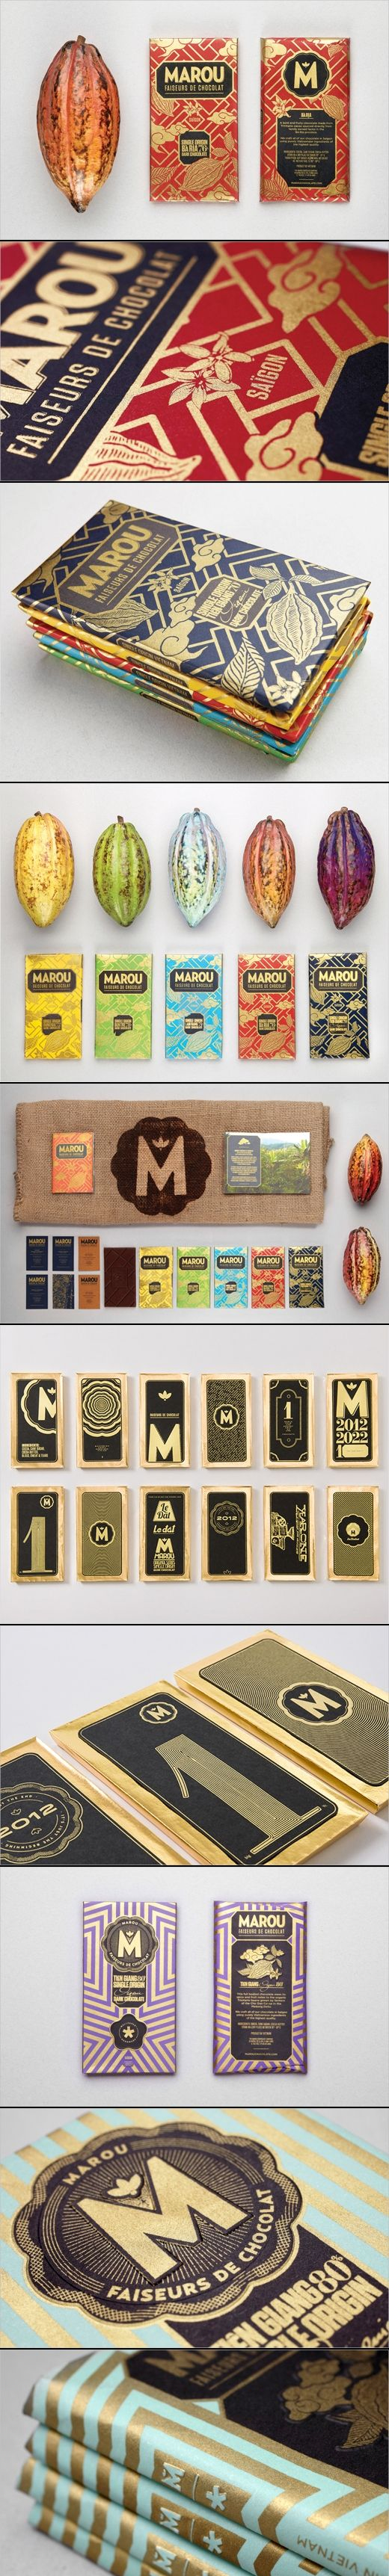 Marou Faiseurs de Chocolat /Rice Creative. oooh all this #chocolate #packaging on one pin PD